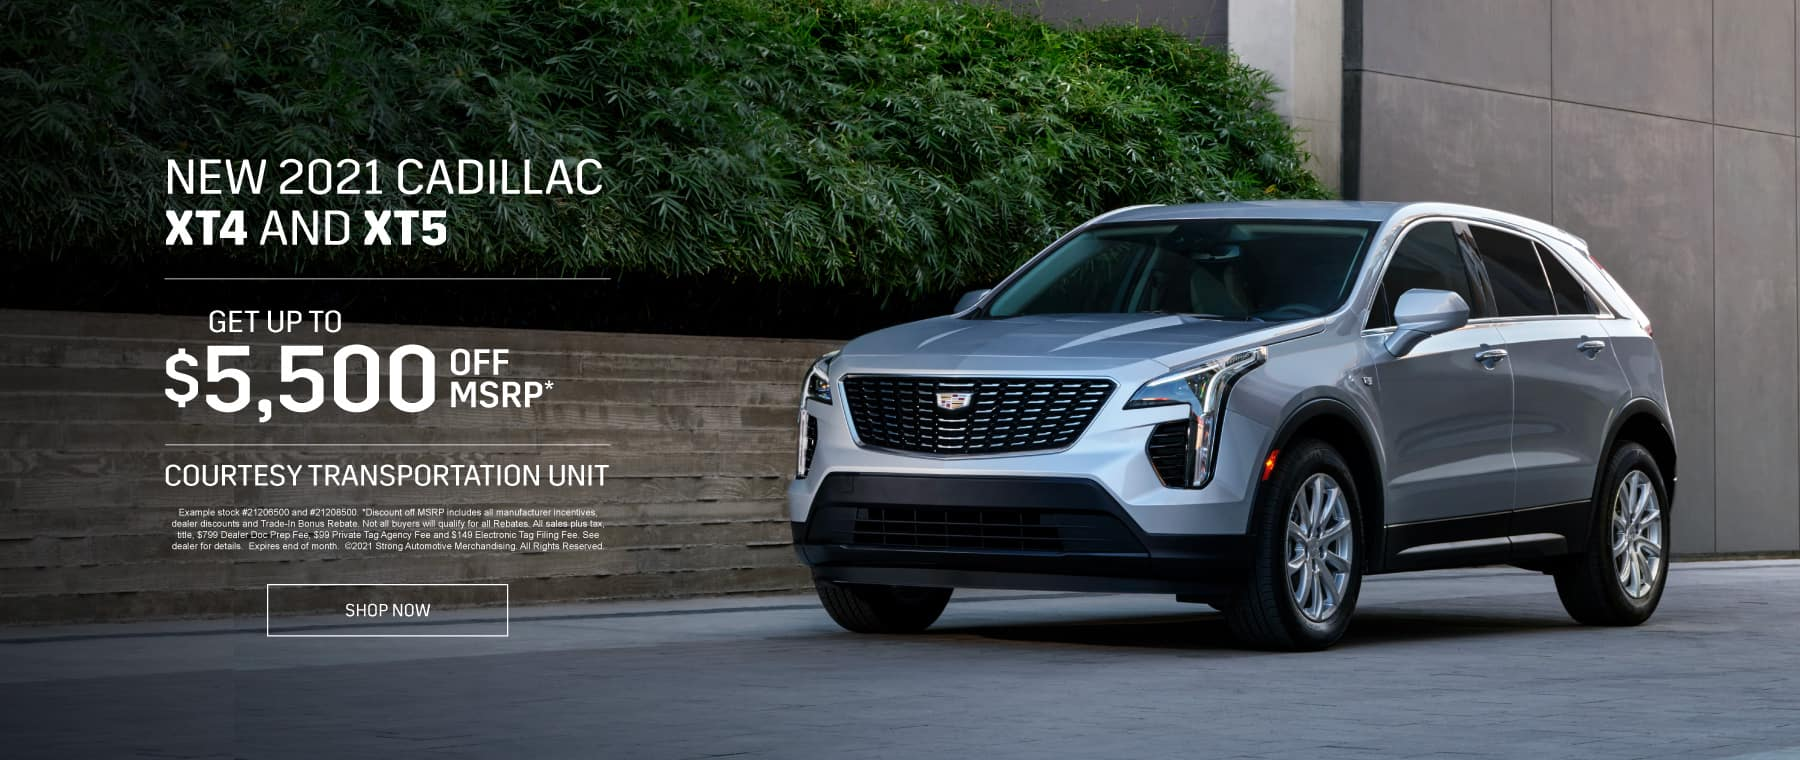 New 2021 Cadillac XT4 and XT5 - Get up to $5500 off msrp - Shop Now